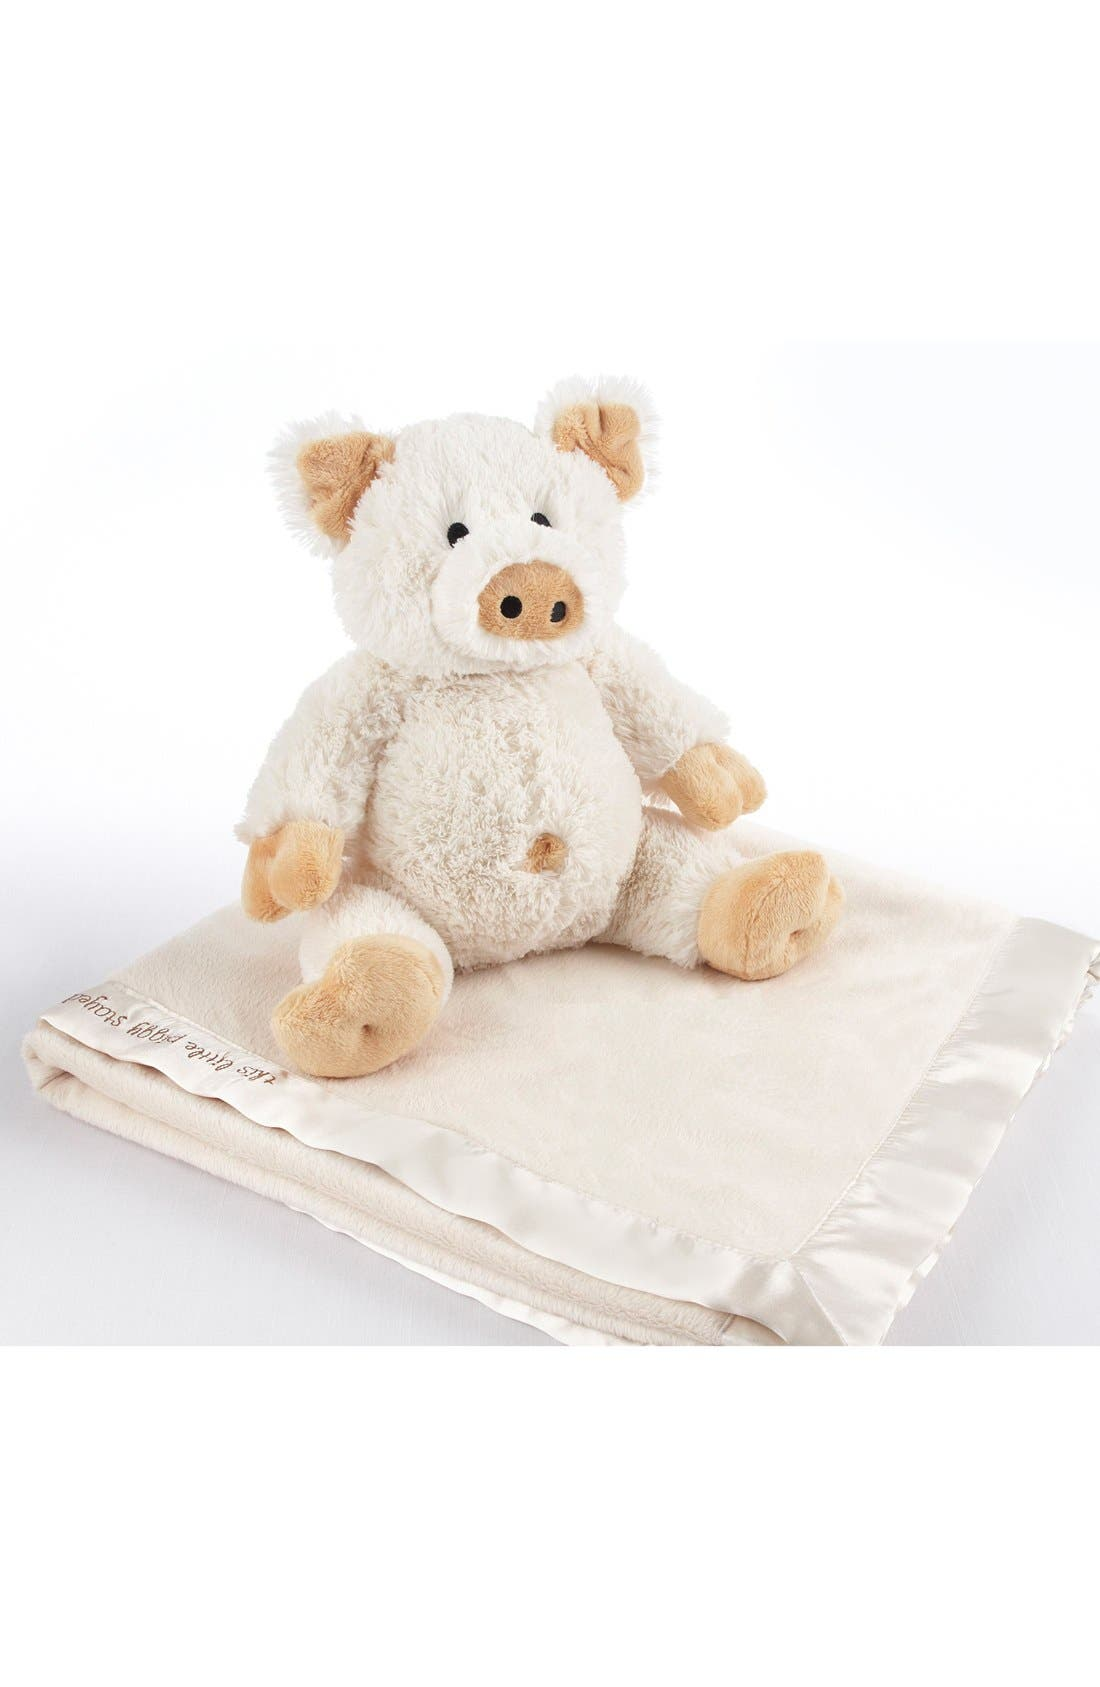 Pig Stuffed Animal & Blanket Set,                         Main,                         color, CREAM